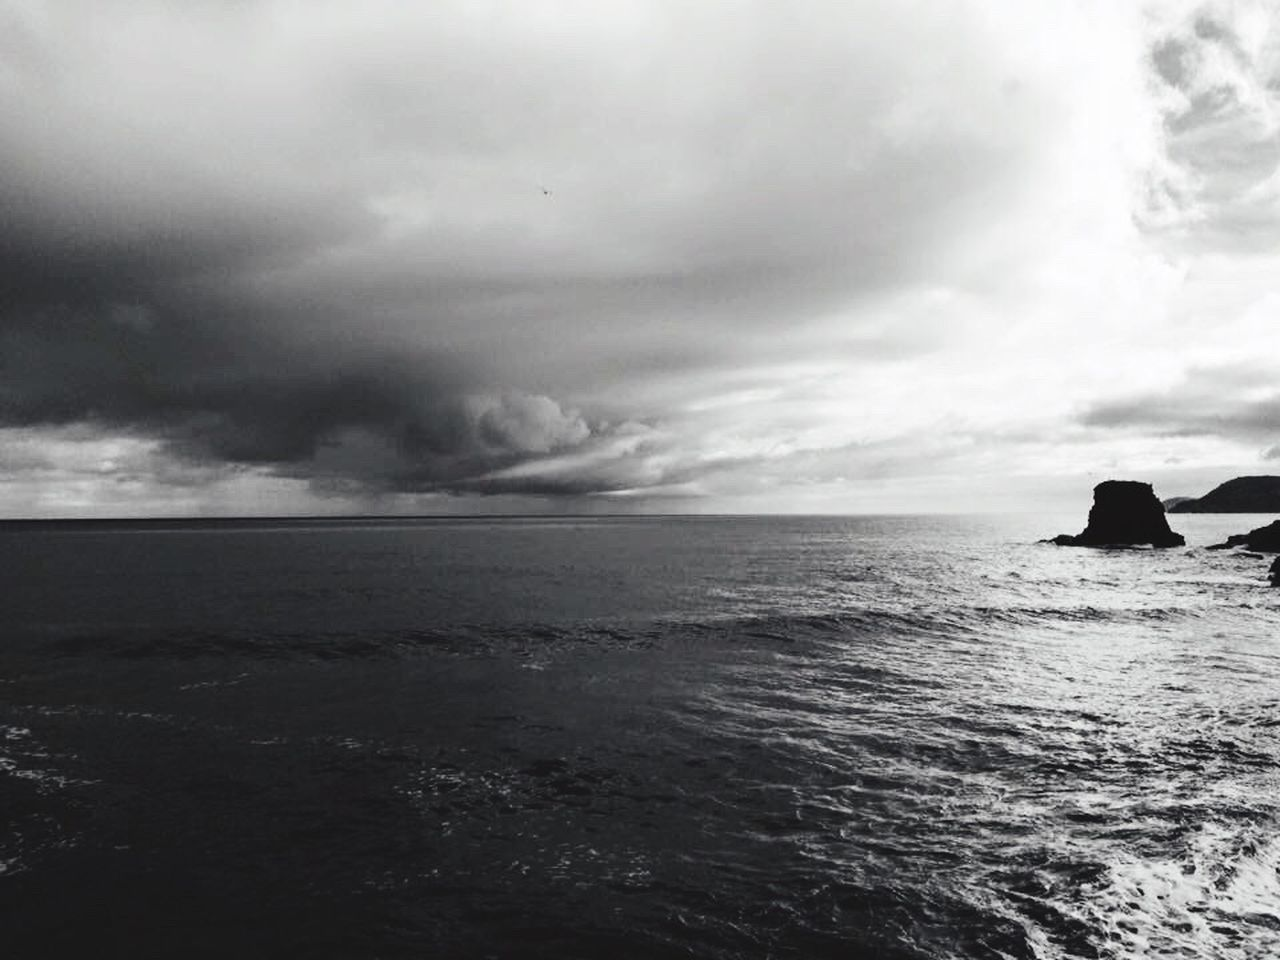 sea, cloud - sky, storm, nature, water, storm cloud, scenics, outdoors, sky, horizon over water, tranquility, no people, day, beauty in nature, thunderstorm